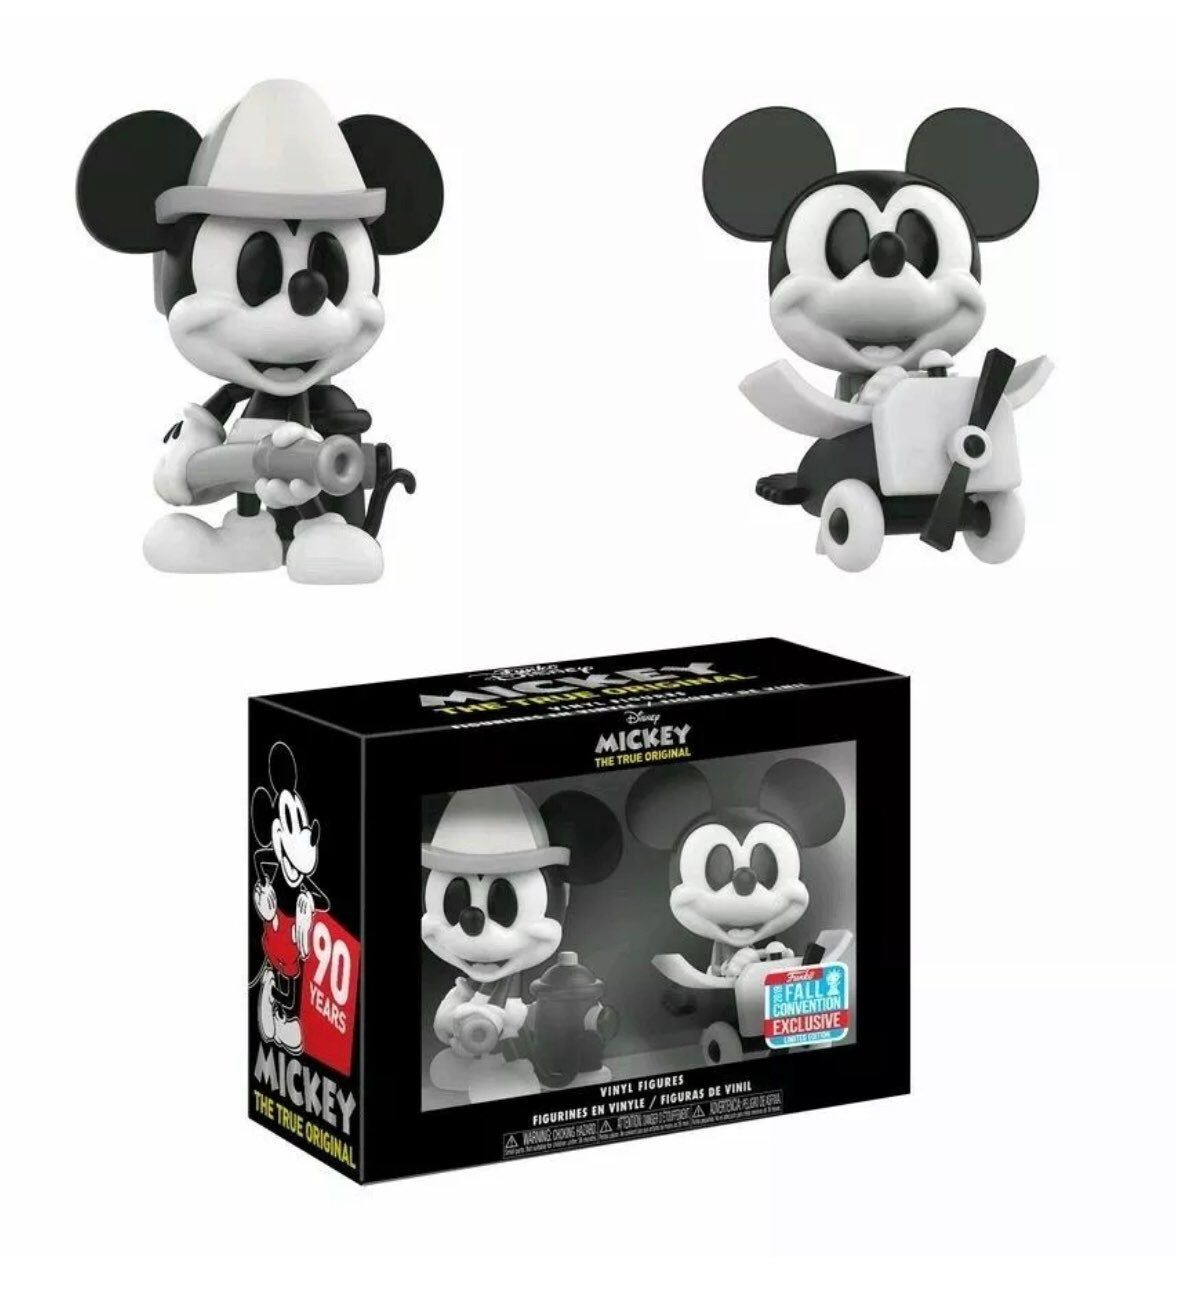 Pin By Stephanie Puccio On Things To Do With Friends In 2020 Vinyl Figures Disney Mickey Mouse Funko Vinyl